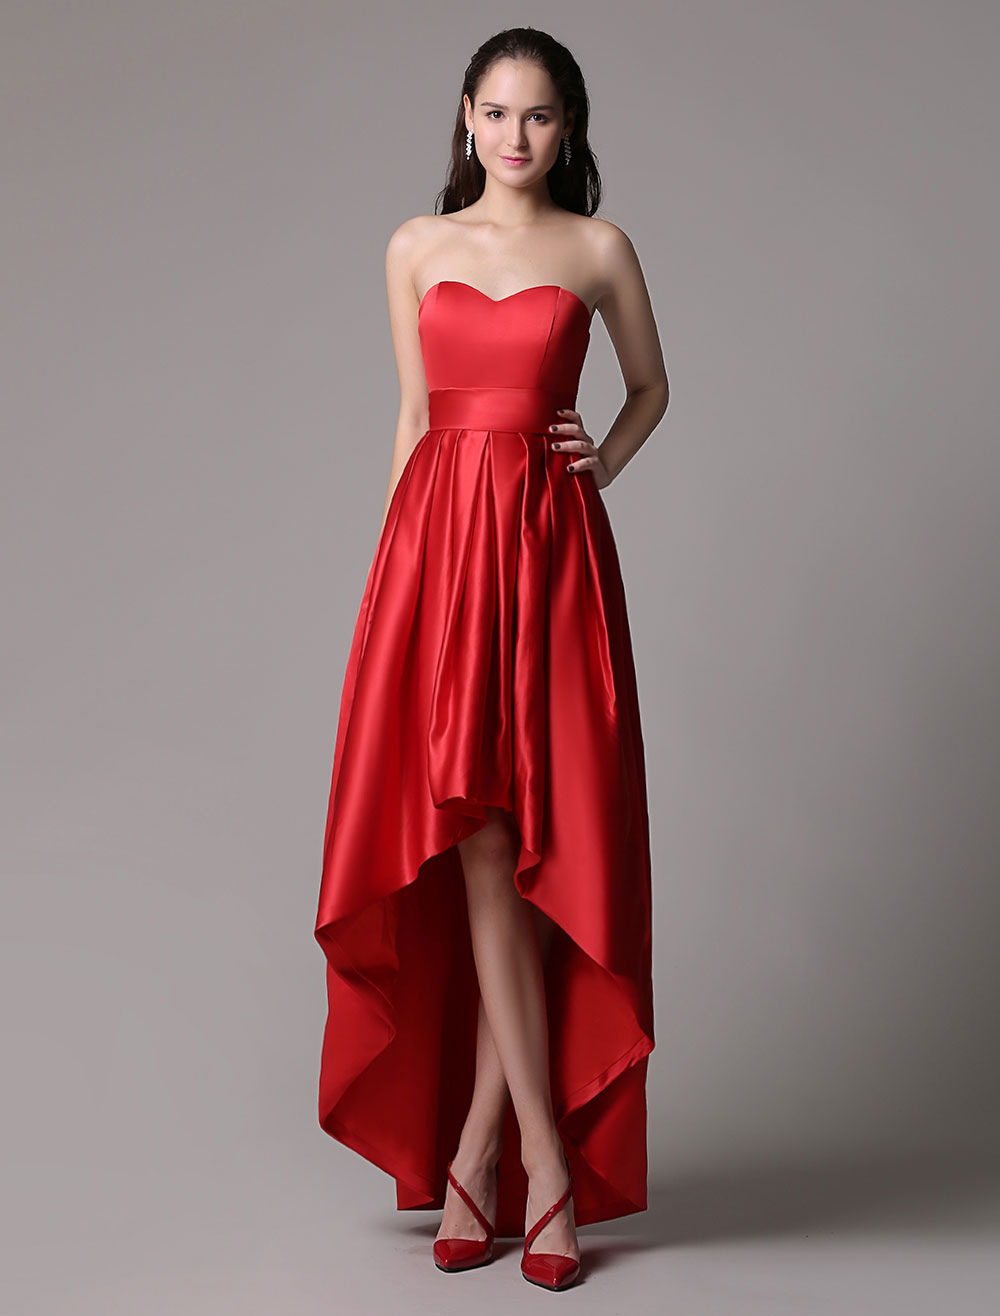 Red Prom Dresses 2018 Short Strapless Backless Cocktail Dress Sweetheart Satin Ruched High Low Party Dress (Wedding) photo